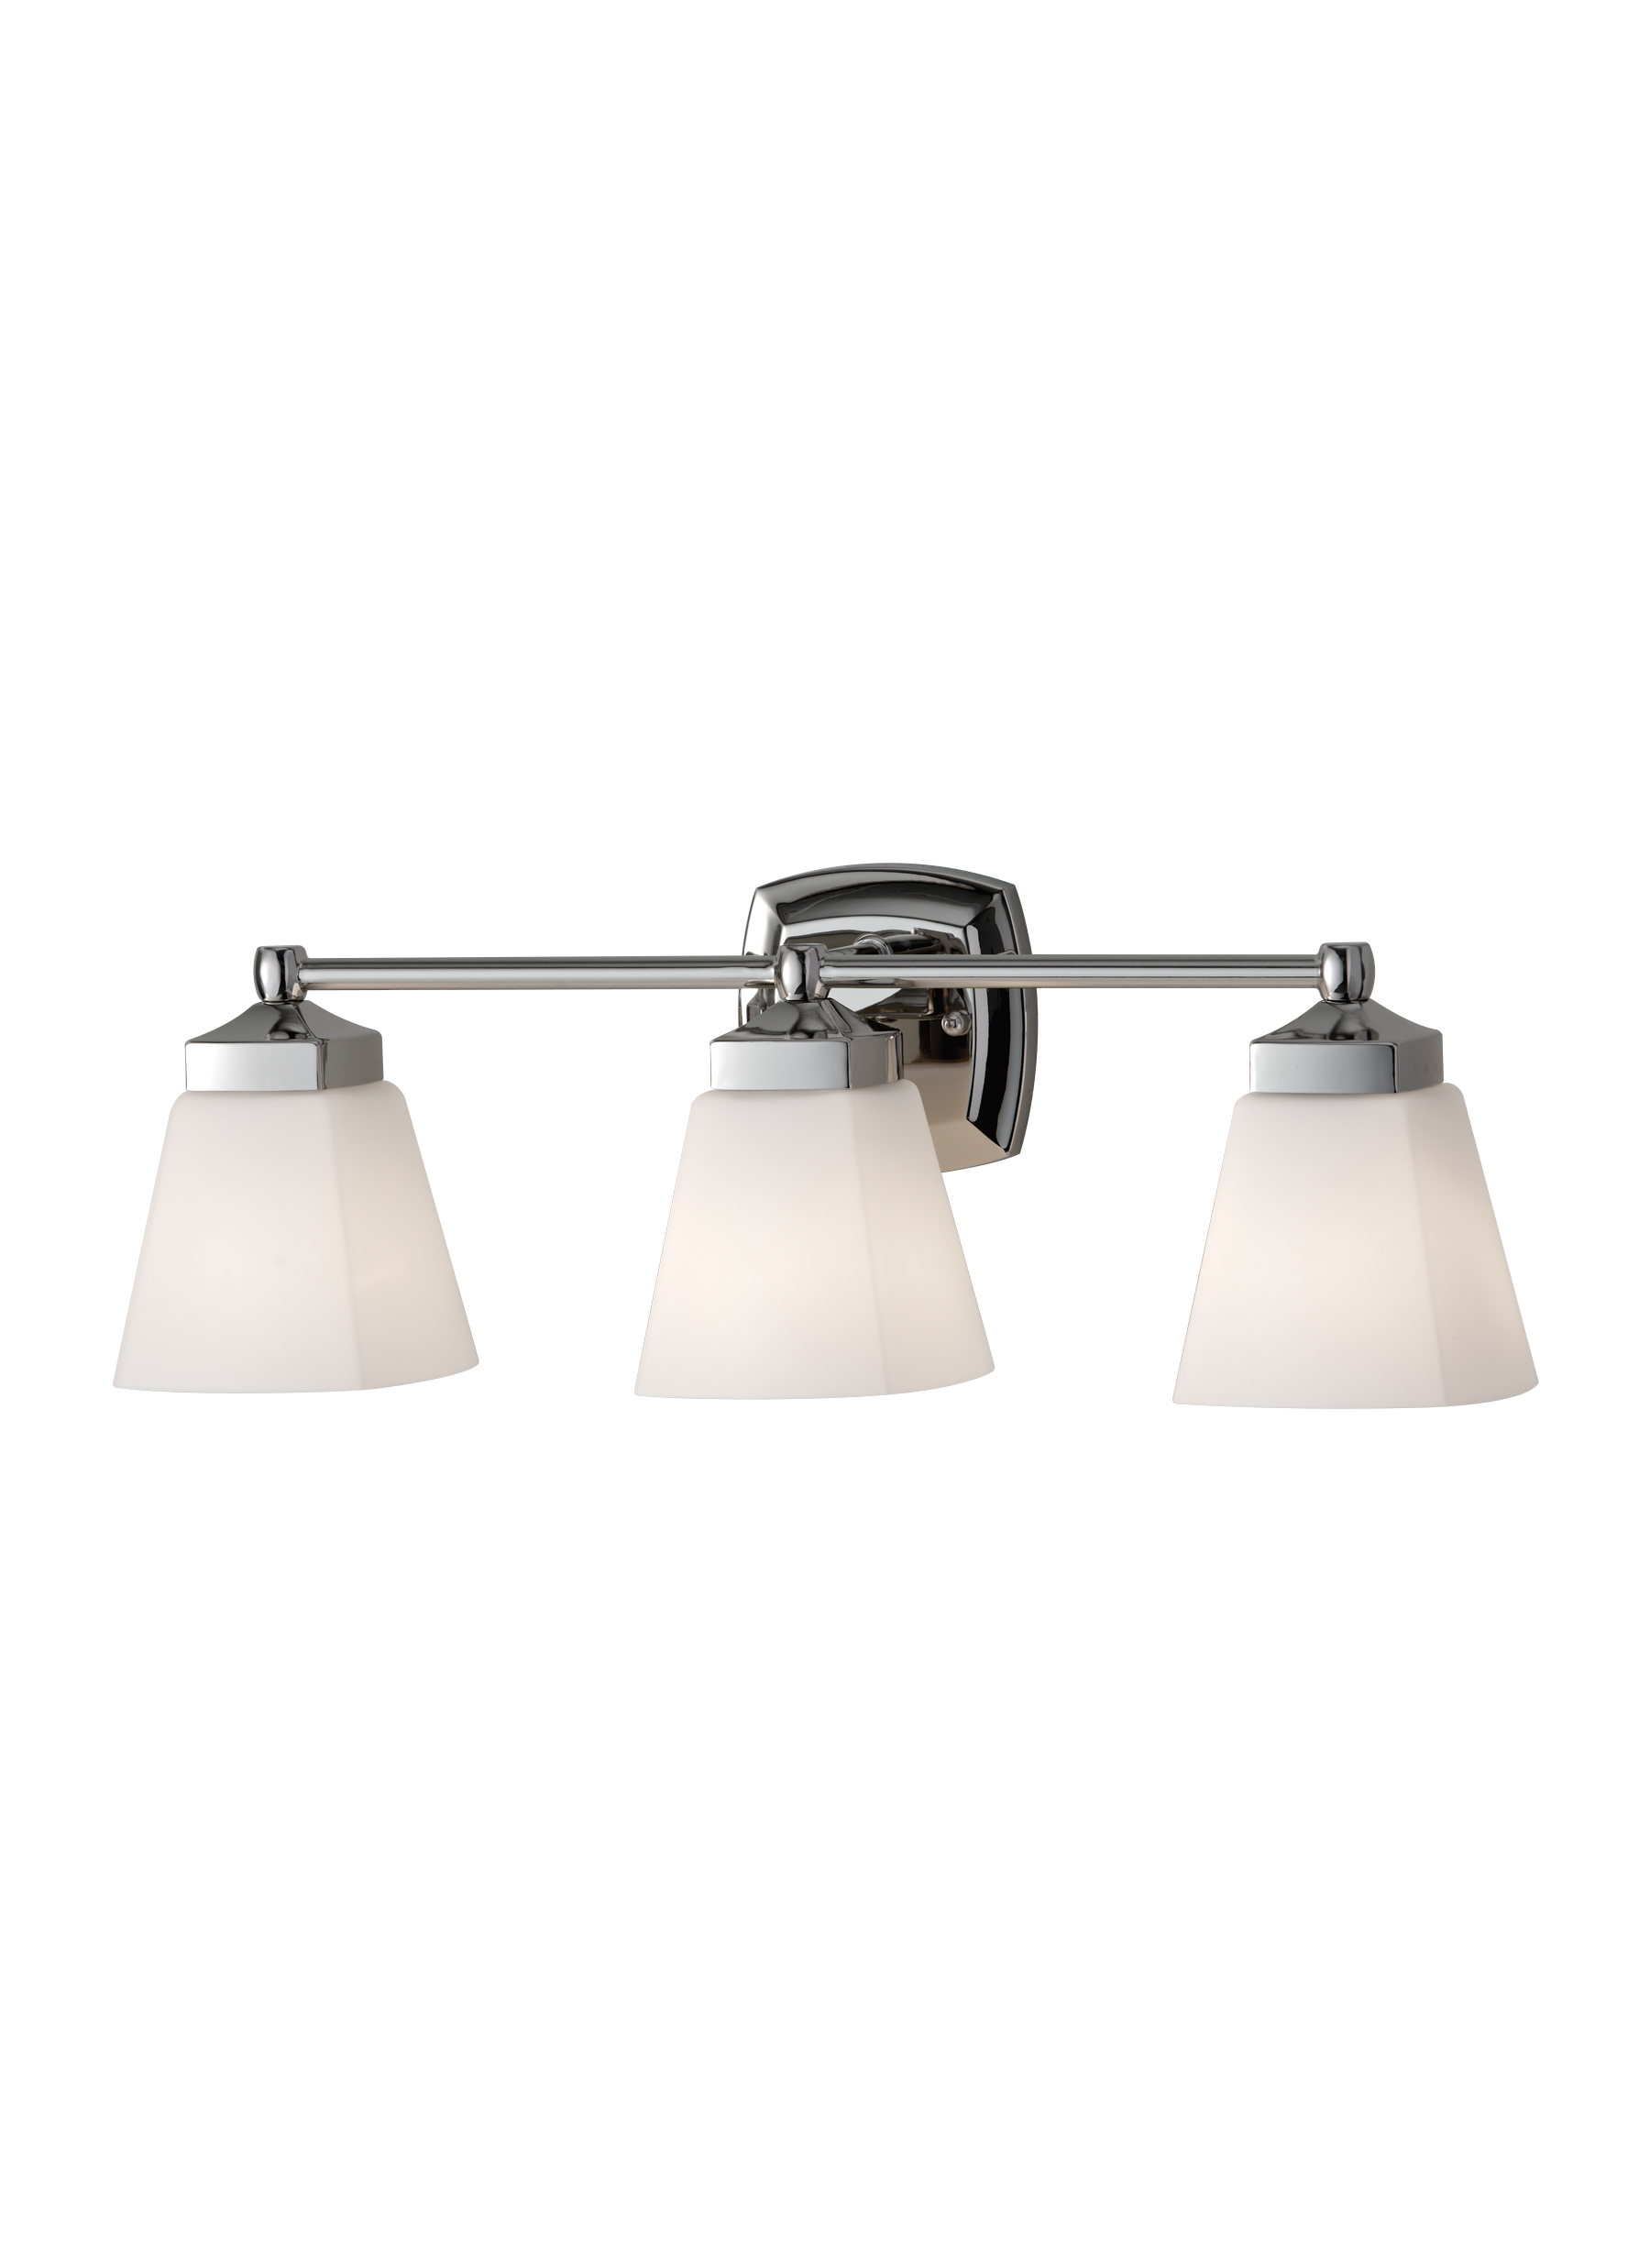 Bathroom Lighting Fixtures Polished Nickel vs19903-pn,3-light vanity strip,polished nickel